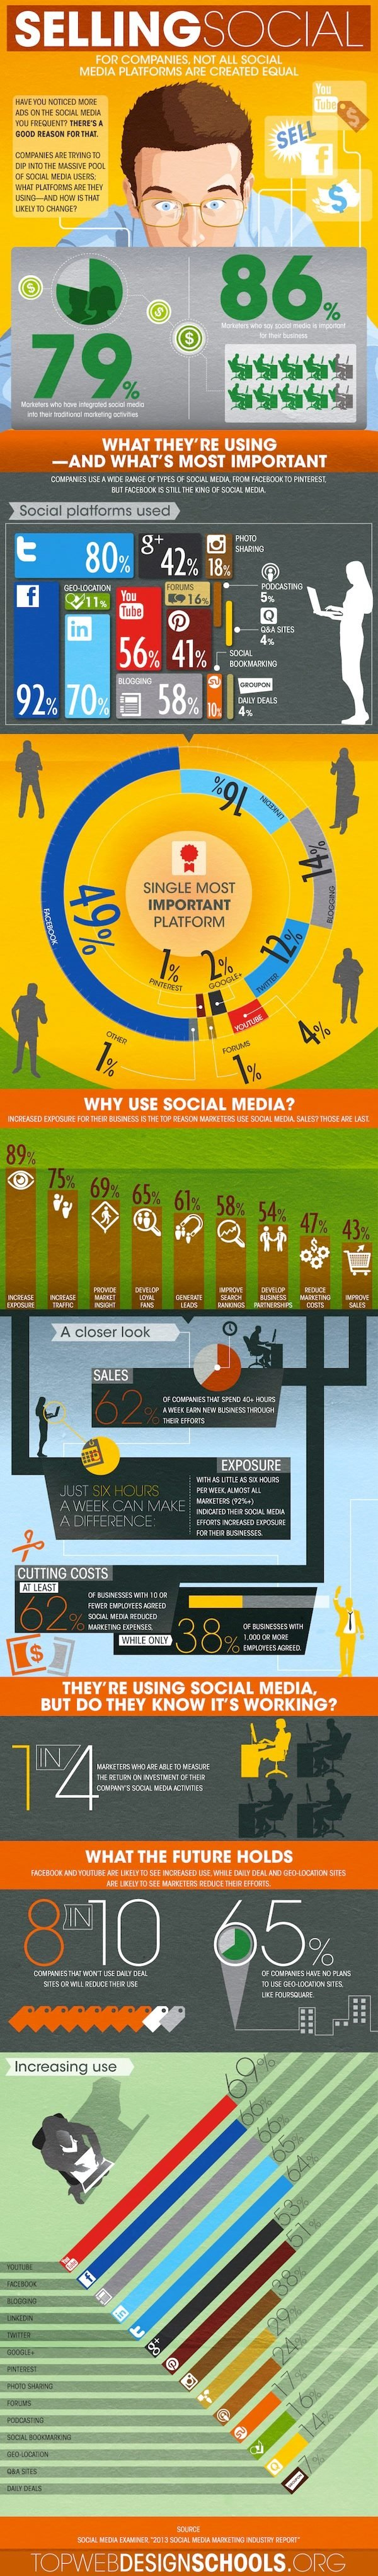 Social Media Marketing Infographic, Customer Experience